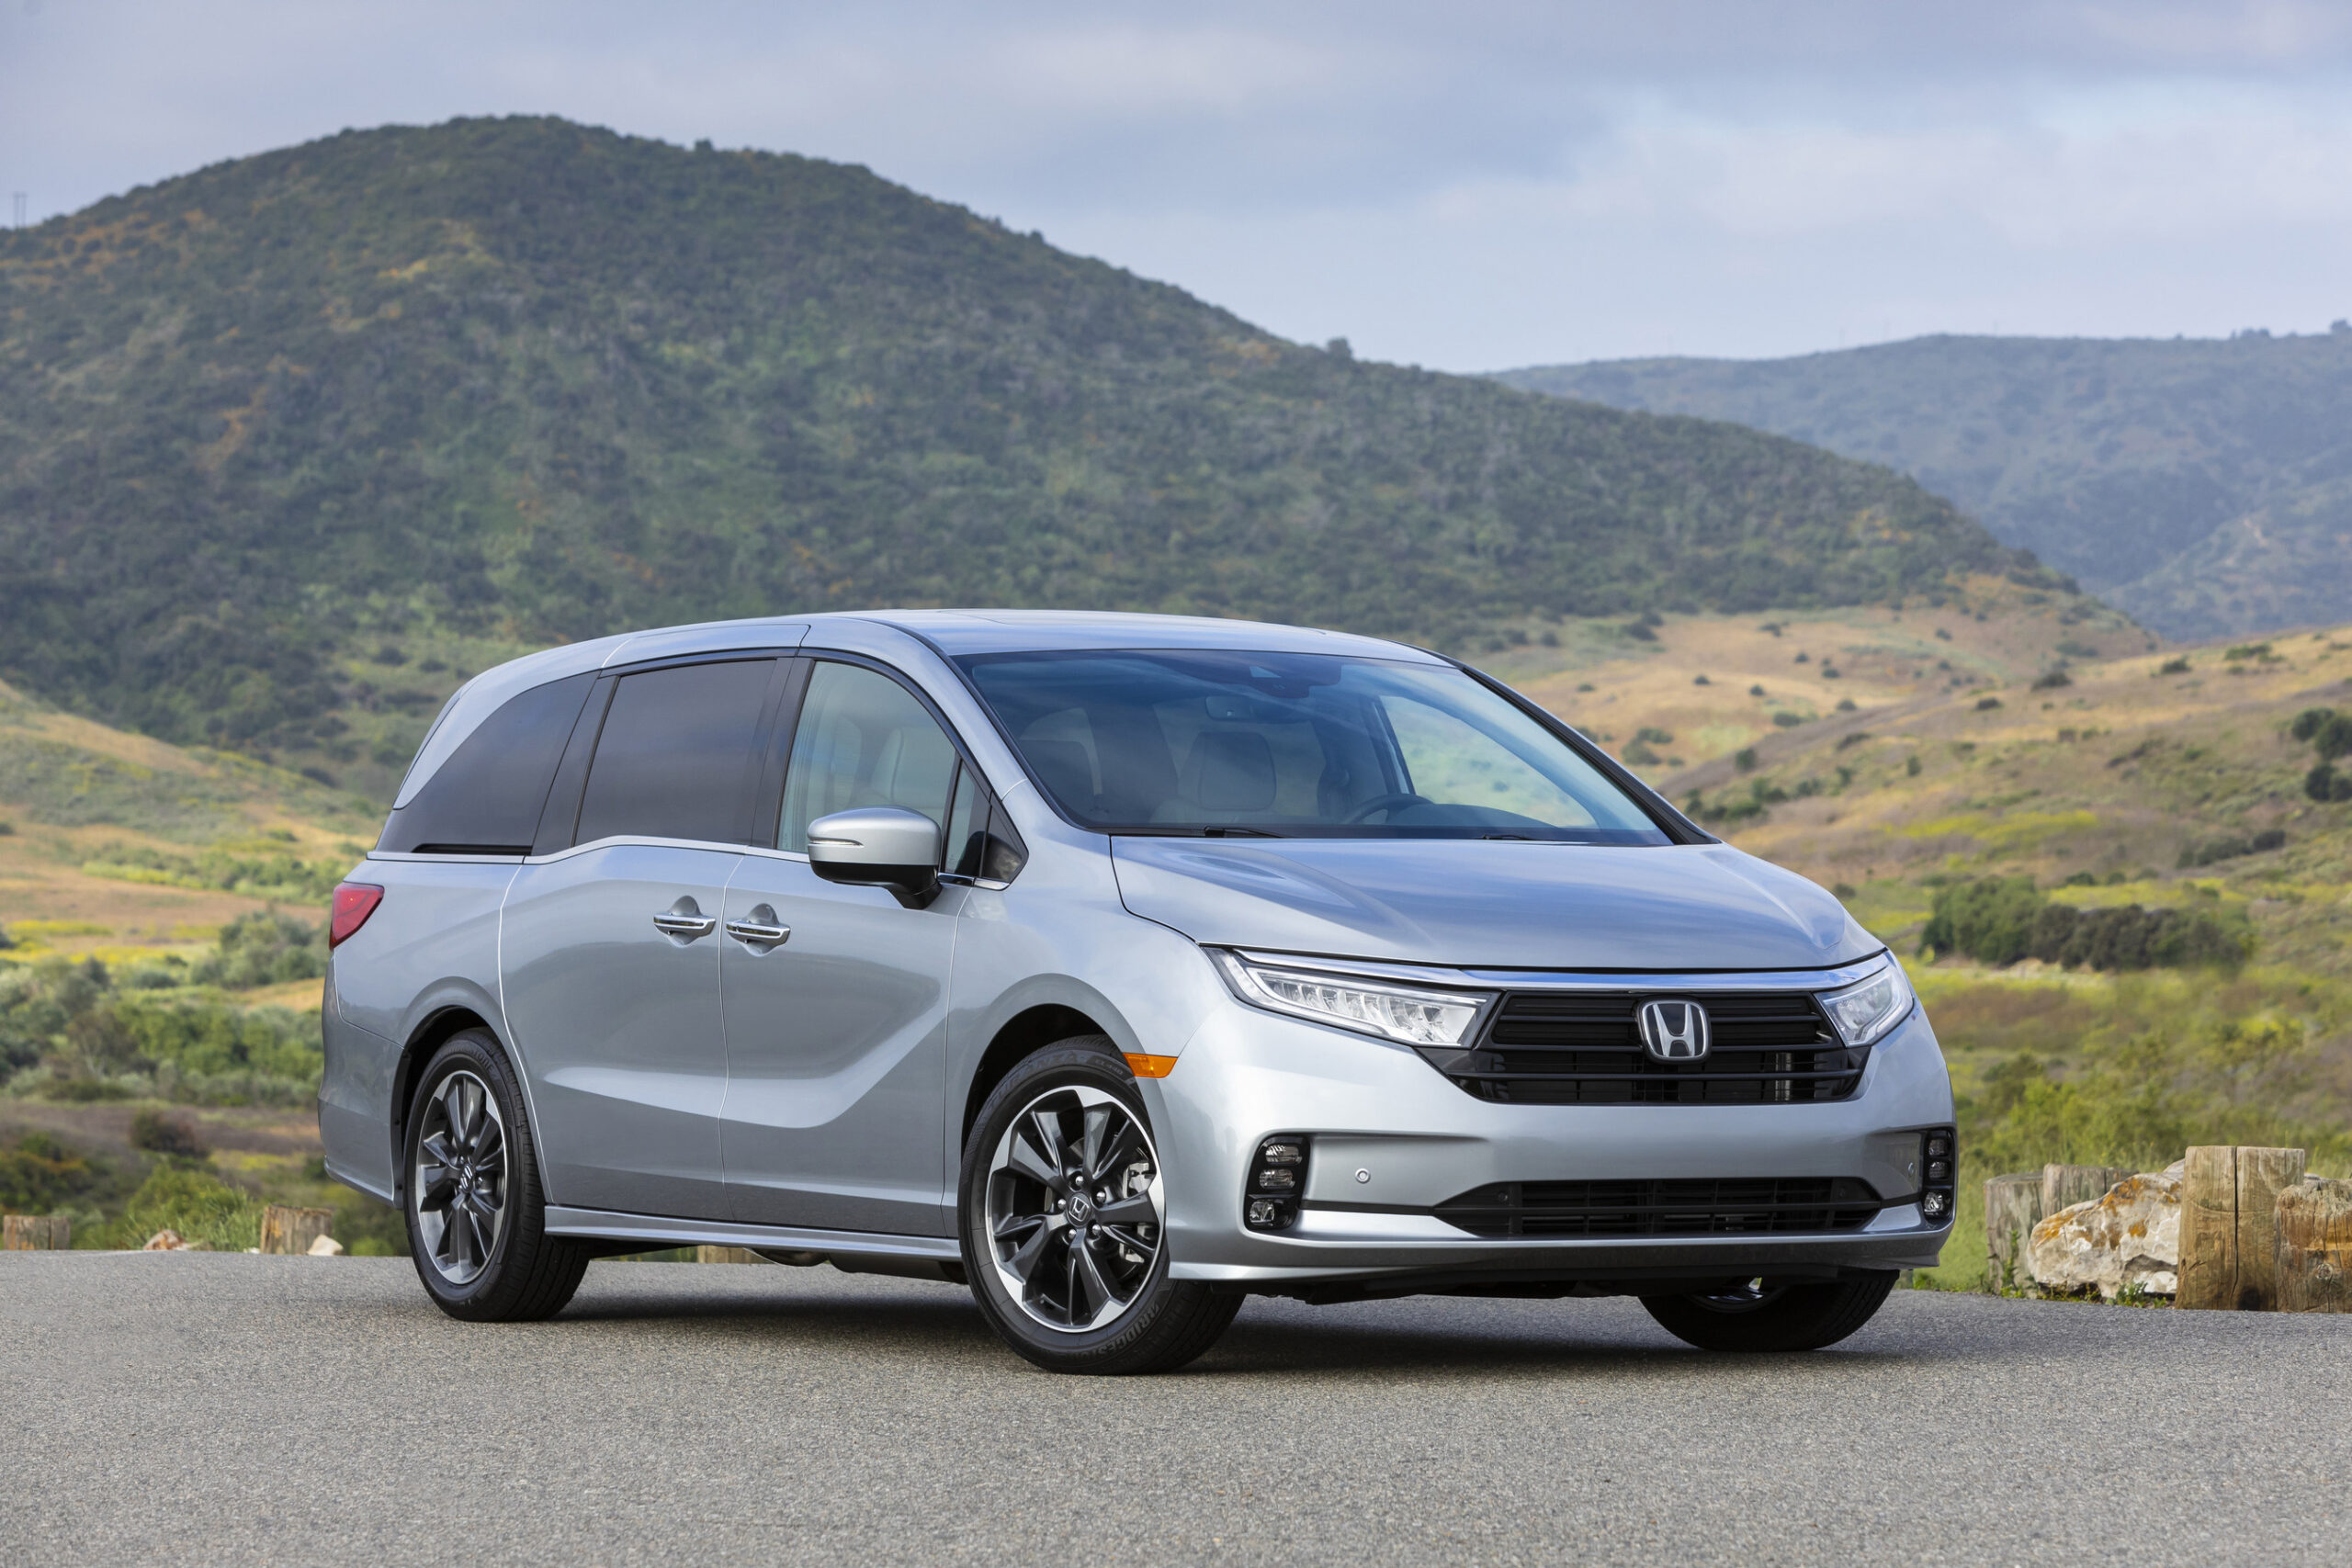 Honda Odyssey, one of the best family road trip vehicles